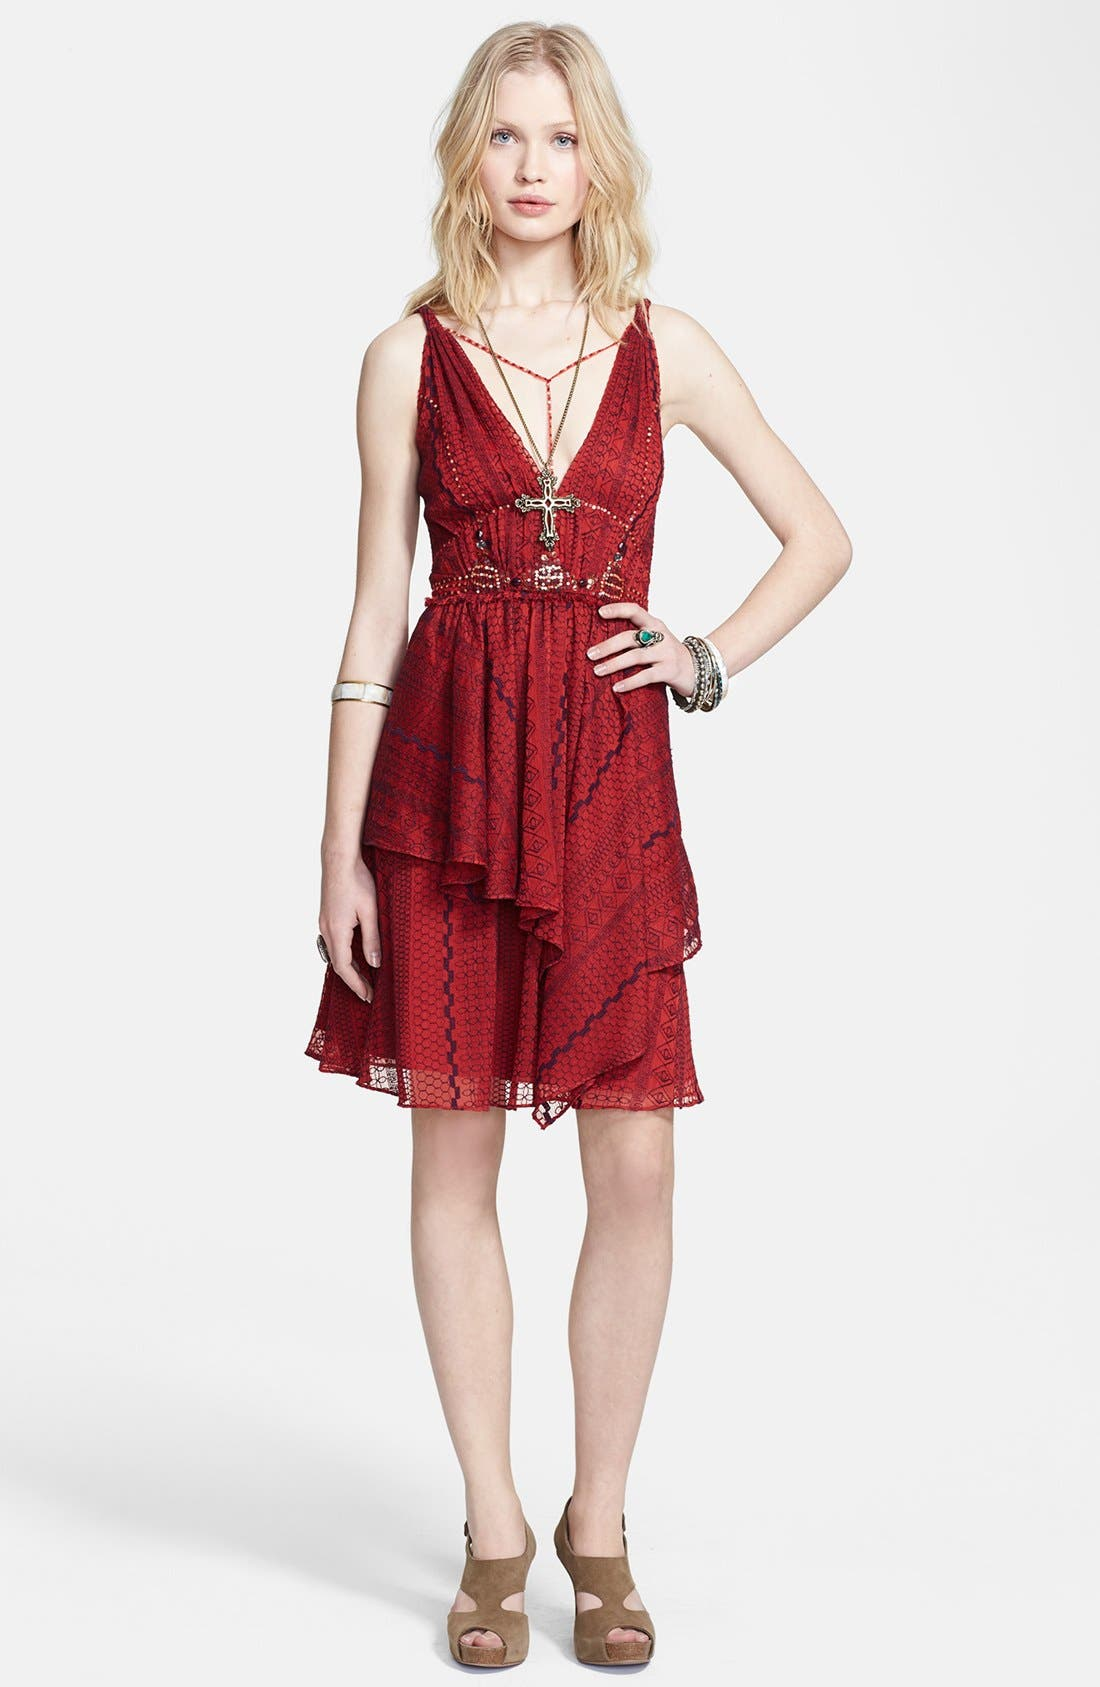 Alternate Image 1 Selected - Free People 'Leia' Embroidered Chiffon Fit & Flare Dress